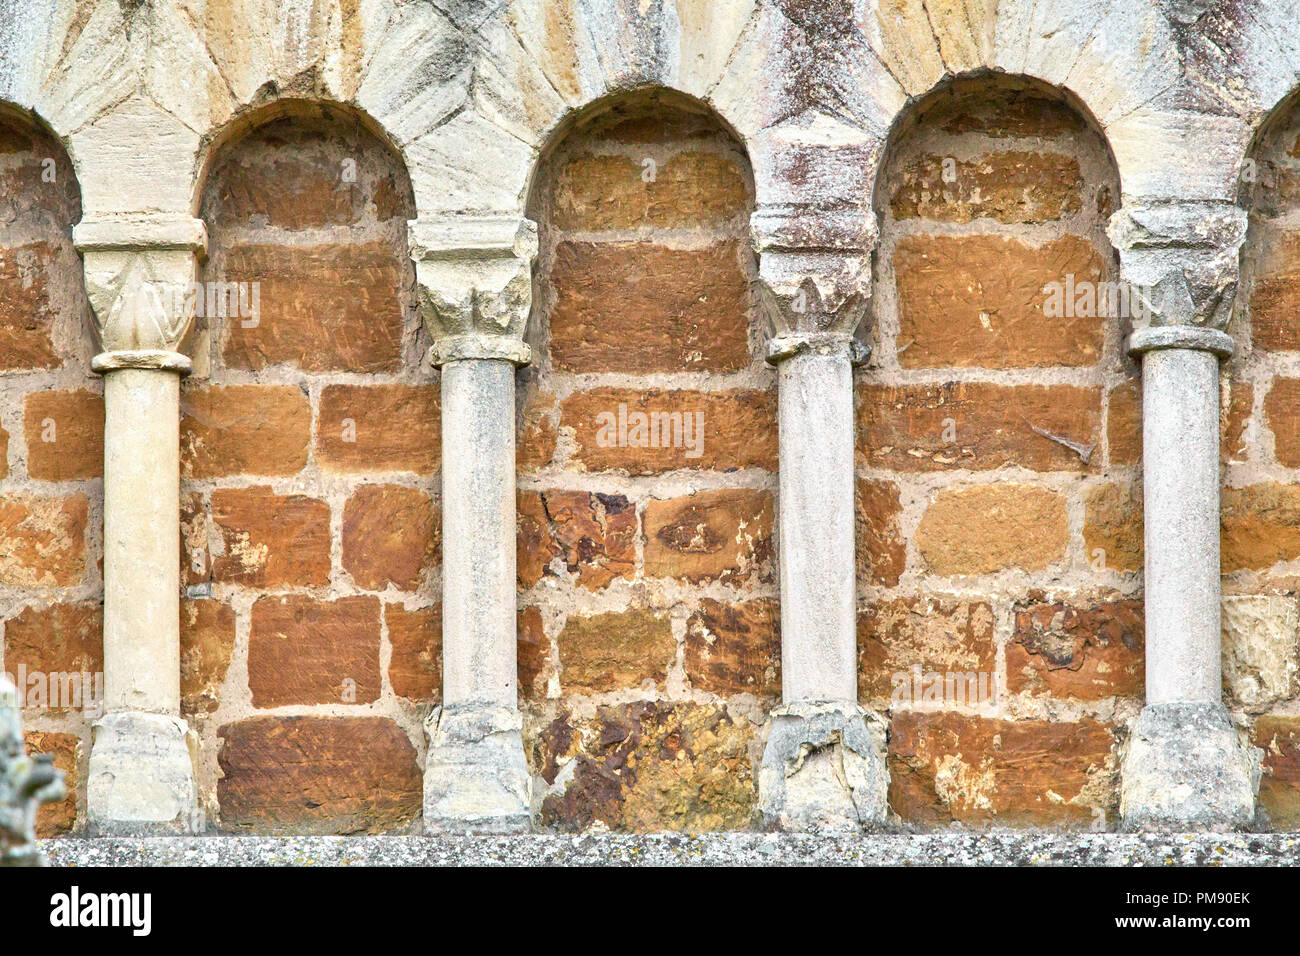 Arches on an external wall of the twelfth century norman church of St Peter, a grade 1 listed building, in the town of Northampton, England Stock Photo